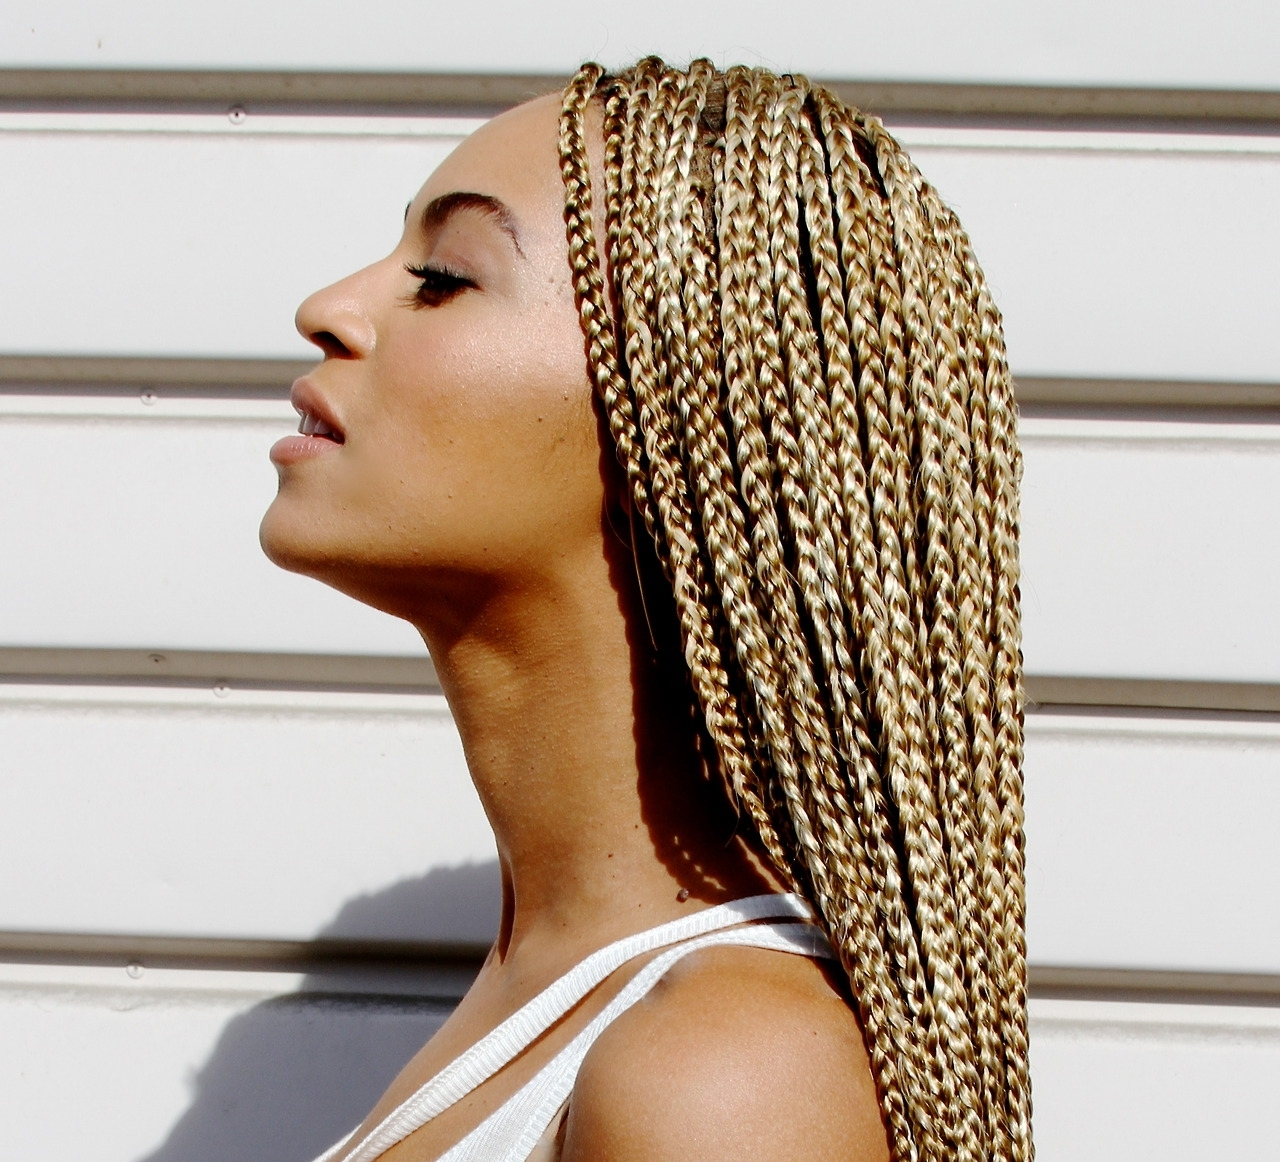 Stylecaster Intended For Popular Cornrows Hairstyles With White Color (View 11 of 15)